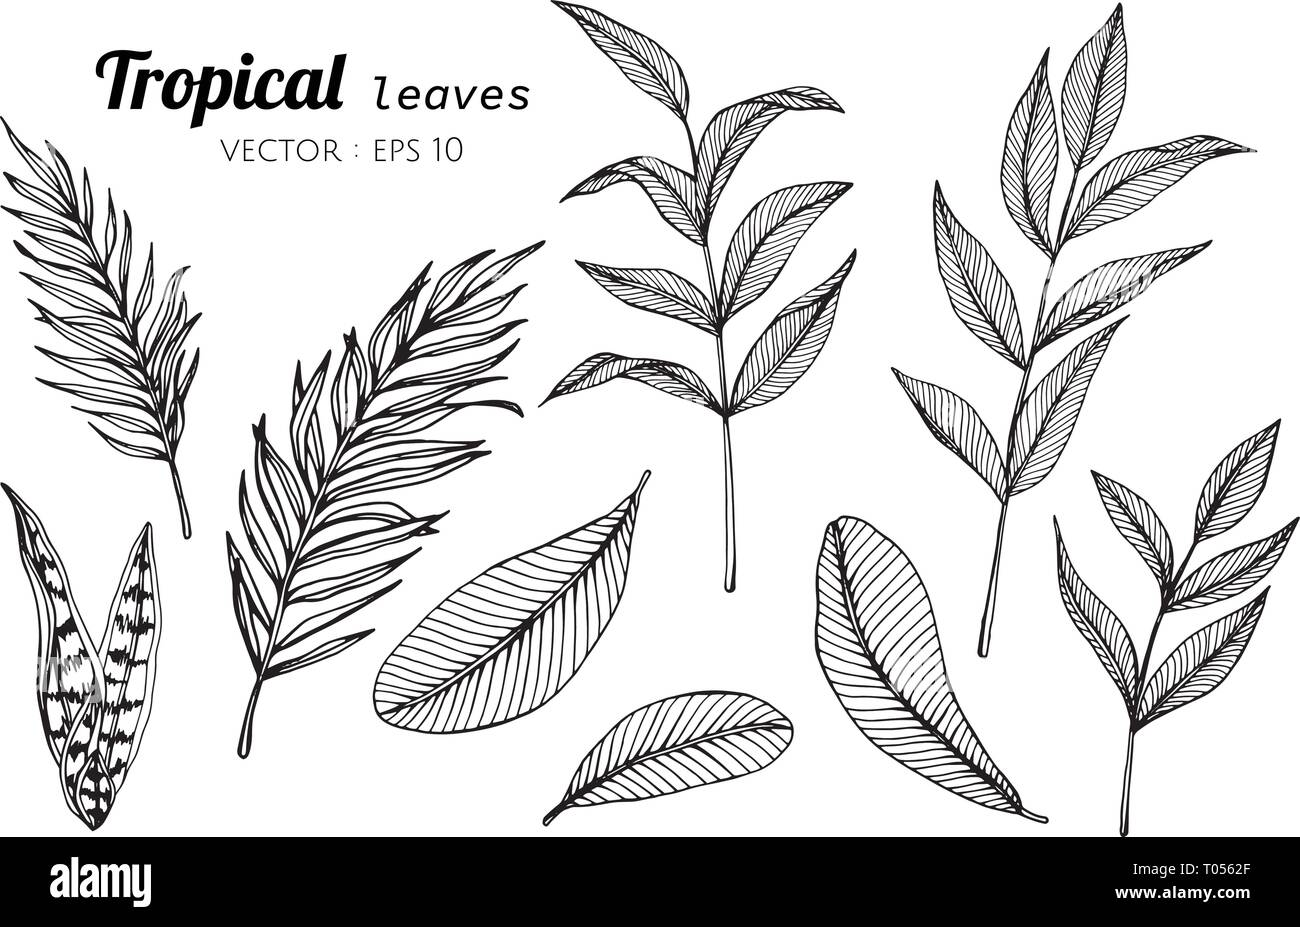 Collection Set Of Tropical Leaves Drawing Illustration For Pattern Logo Template Banner Posters Invitation And Greeting Card Design Stock Vector Image Art Alamy Show off your brand's personality with a custom tropical logo designed just for you by a professional designer. https www alamy com collection set of tropical leaves drawing illustration for pattern logo template banner posters invitation and greeting card design image241059687 html